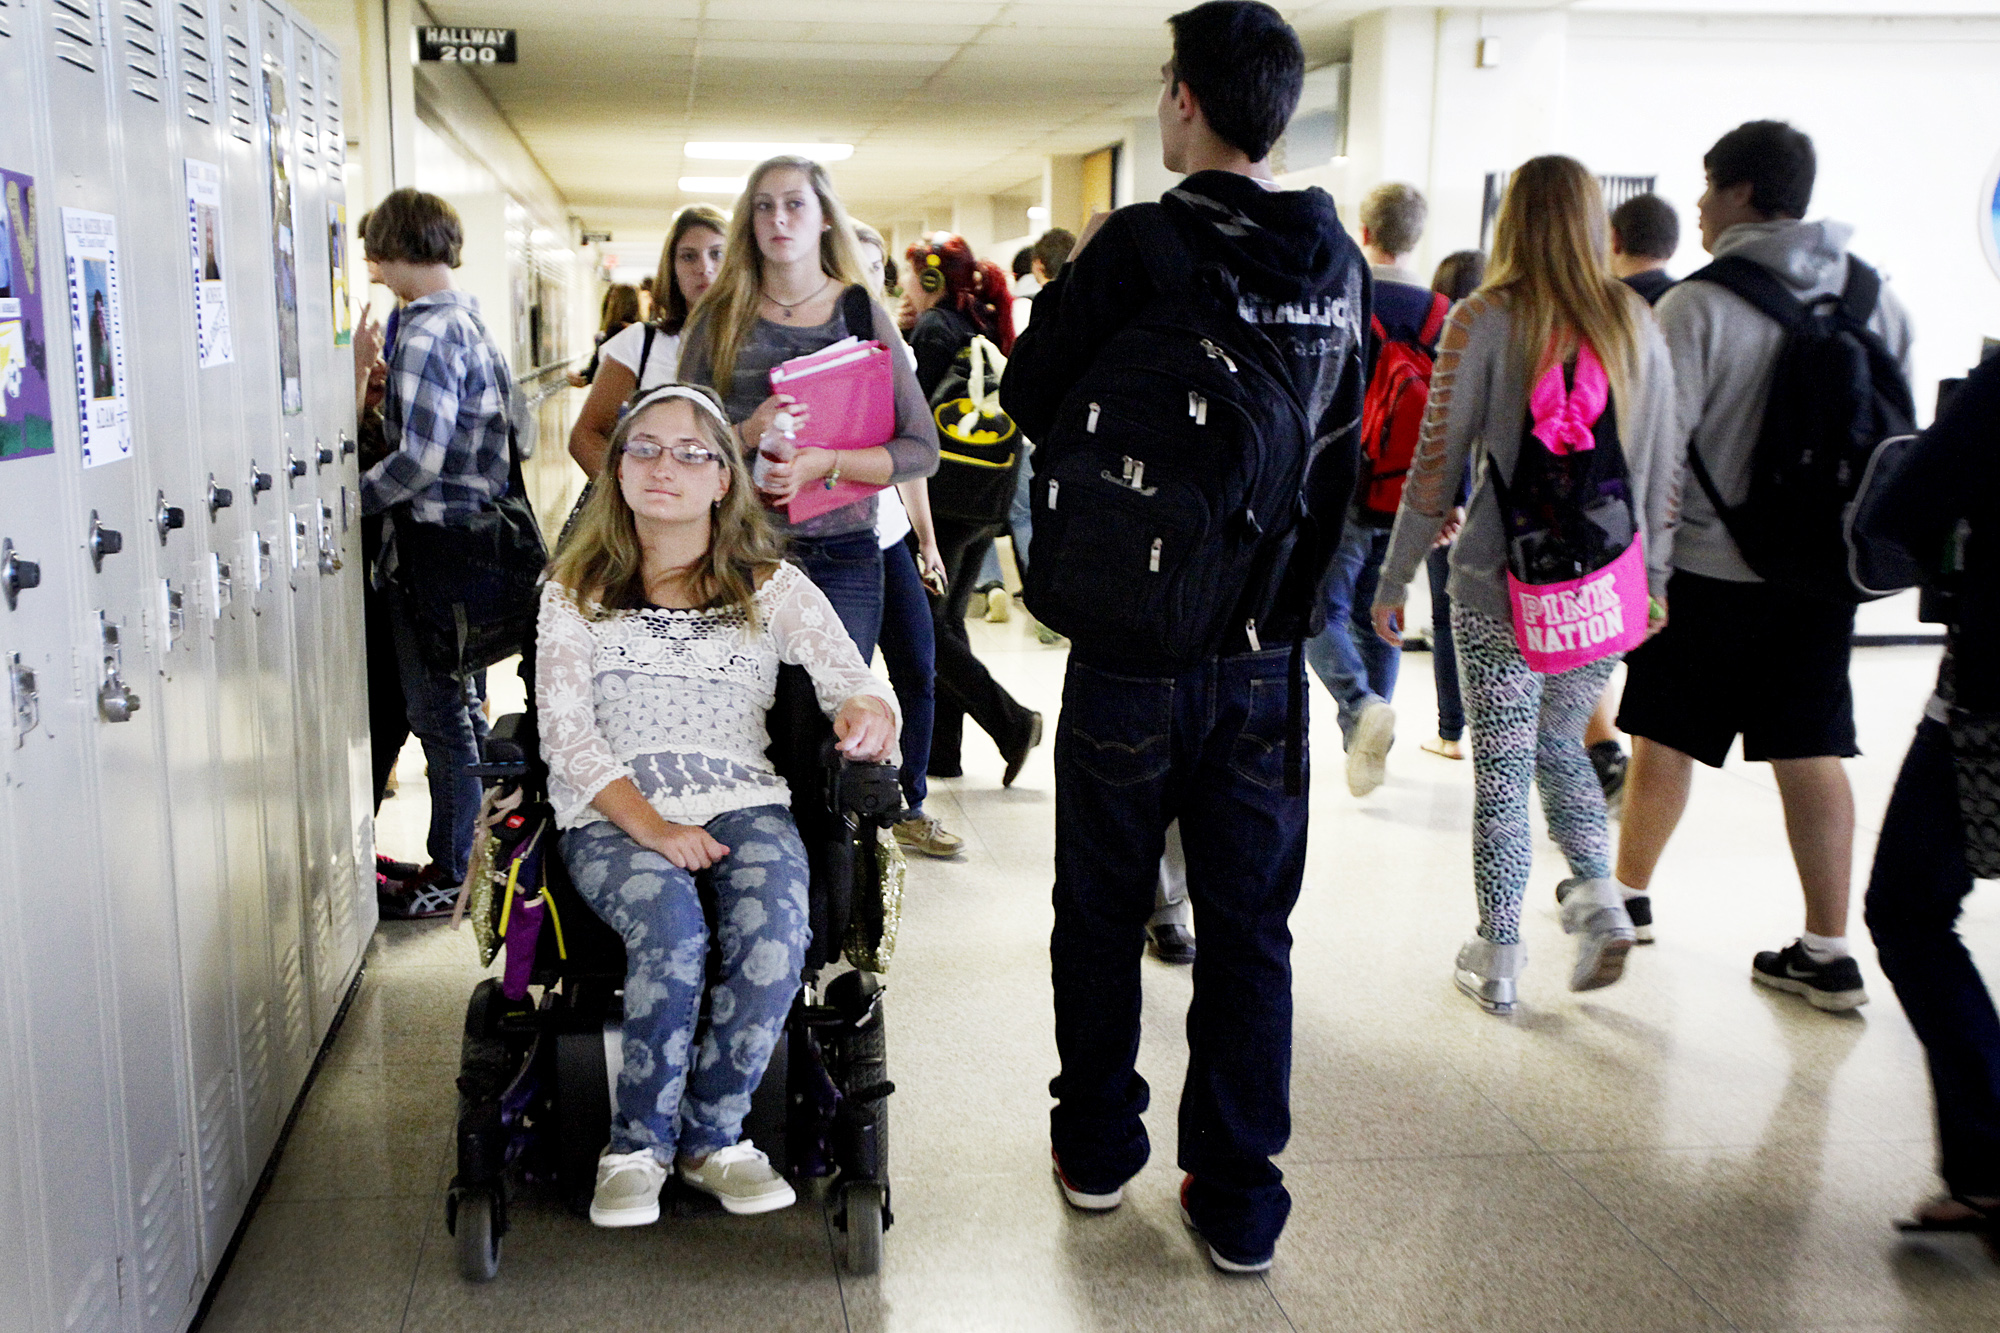 Emily Lezon heads to class among the flood of students at Vermilion High School Monday, October 14.